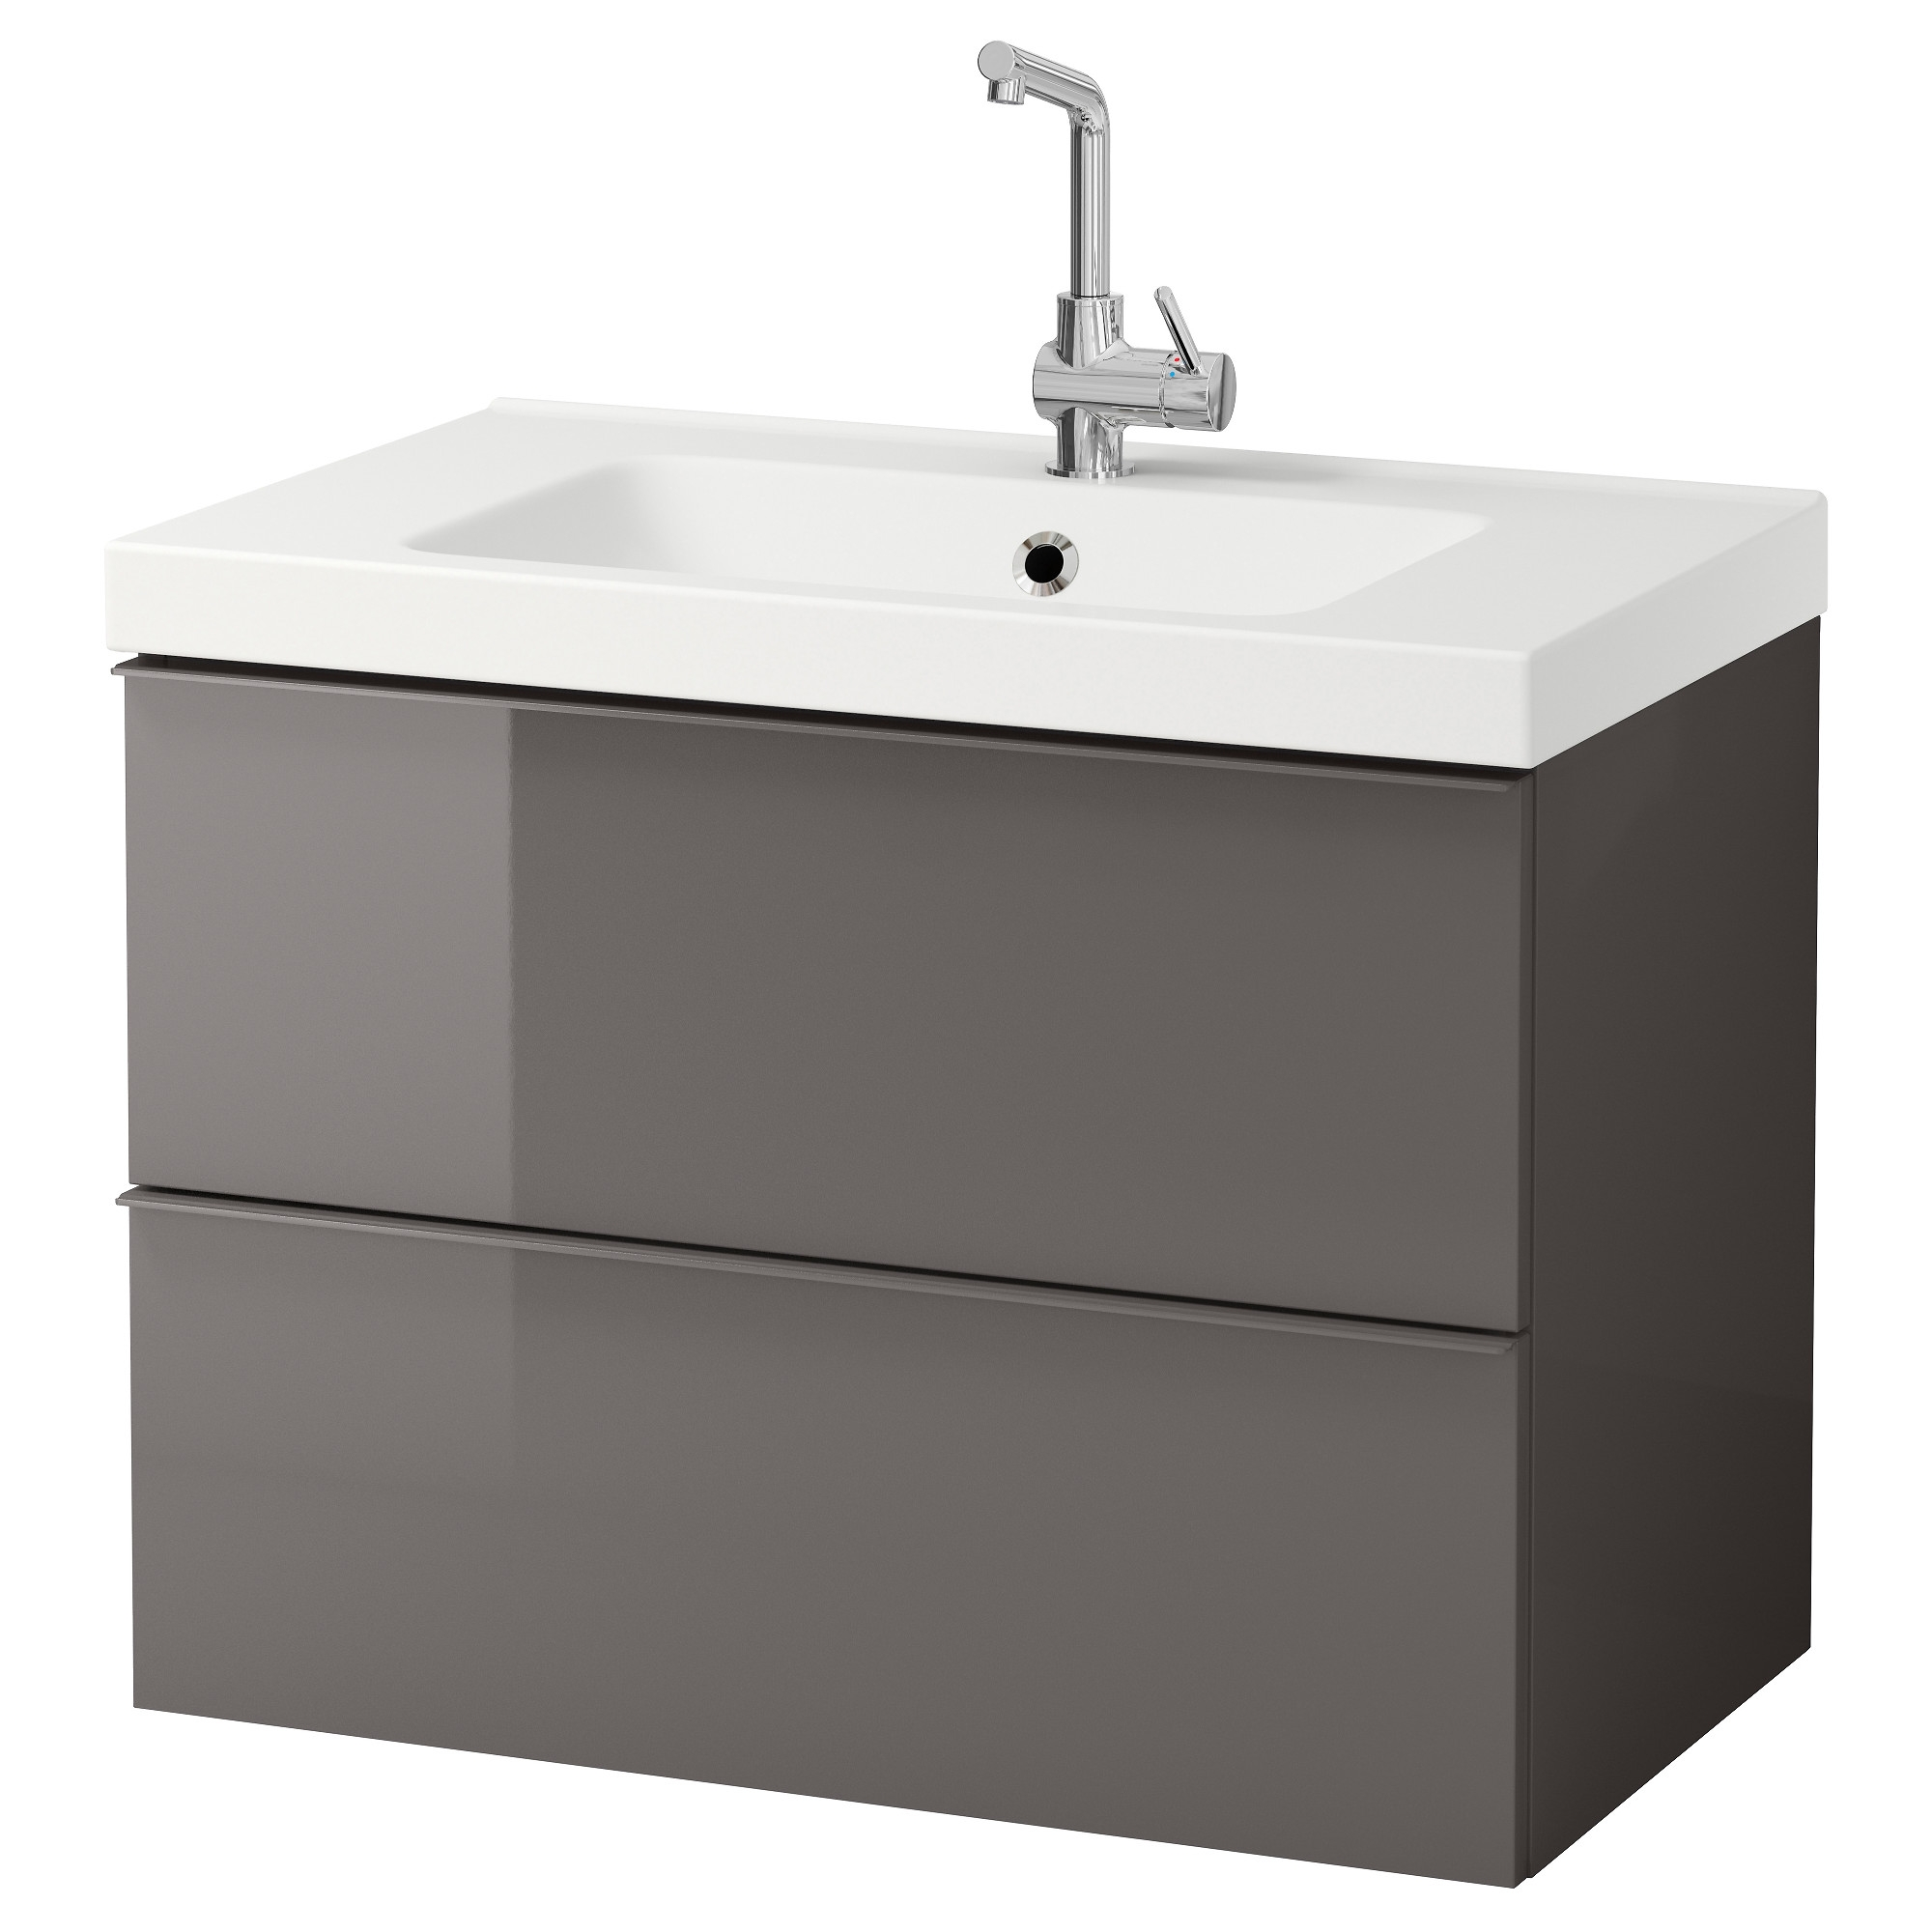 Bathroom Vanity Cabinets Ikeagodmorgon odensvik sink cabinet with 2 drawers high gloss